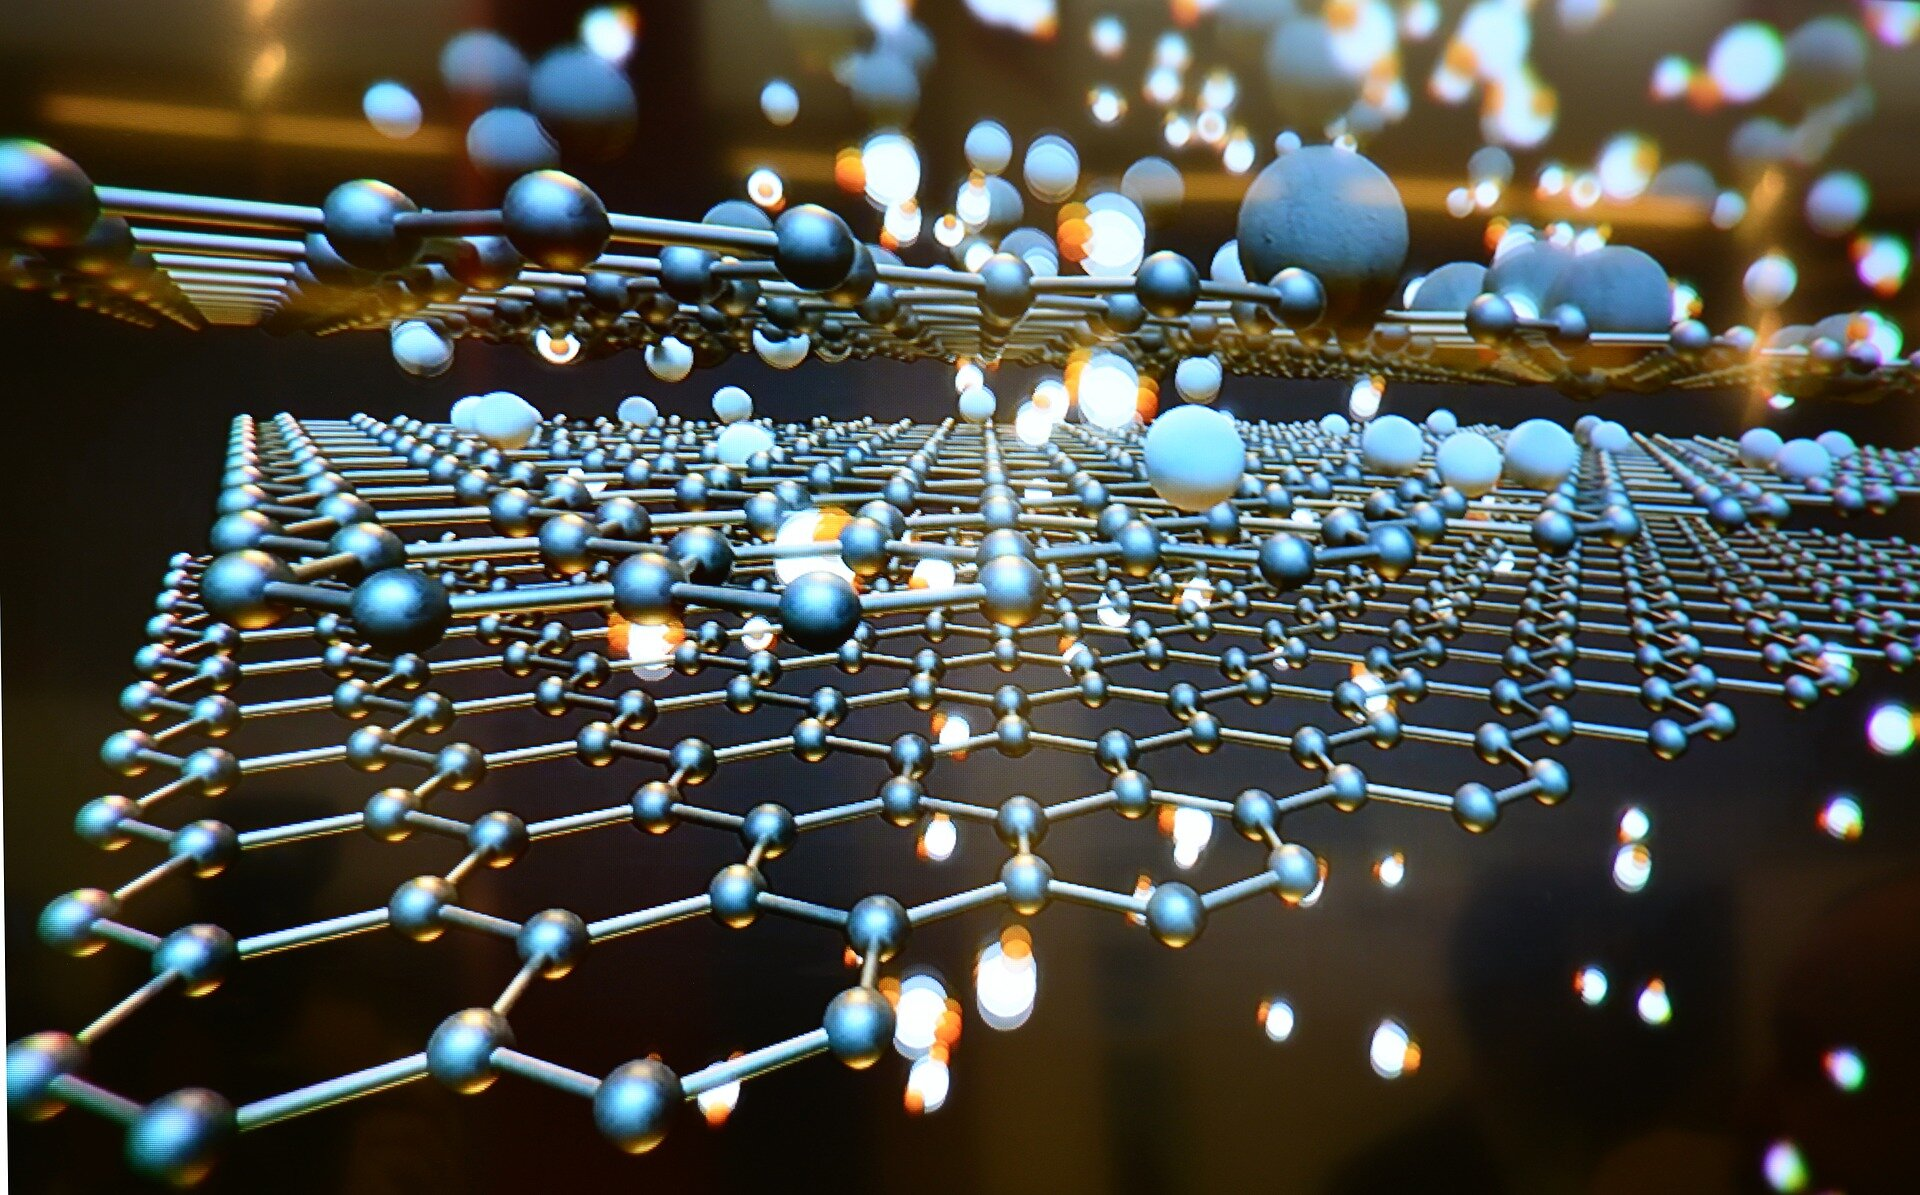 Graphene: The building block for sustainable cities